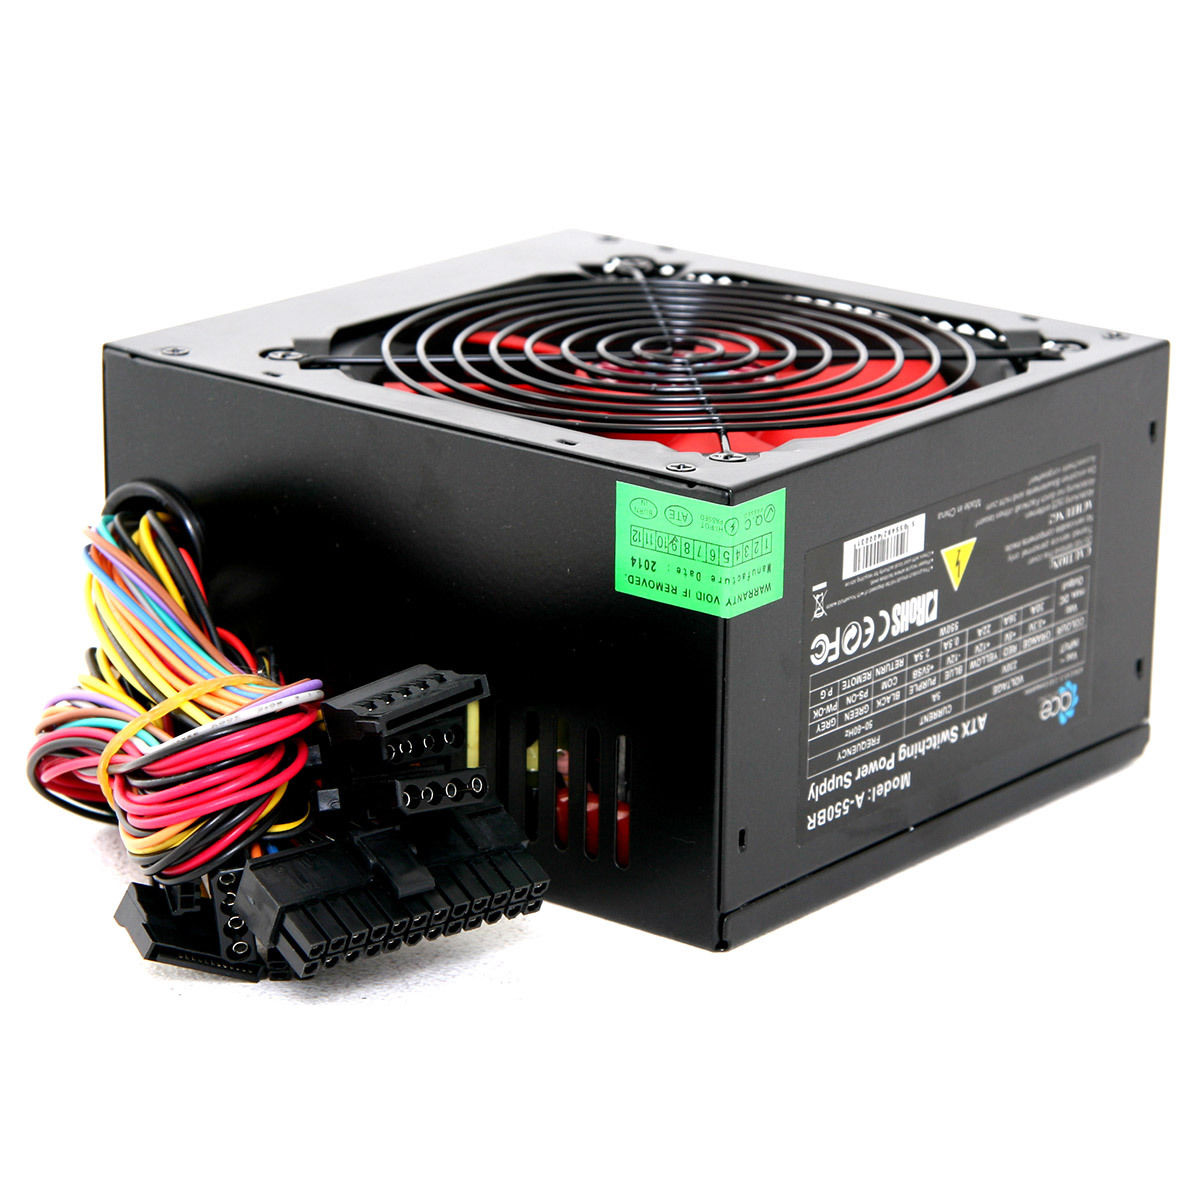 ACE 550W Black ATX Gaming PC PSU Power Supply 120mm Red – Oxford ...